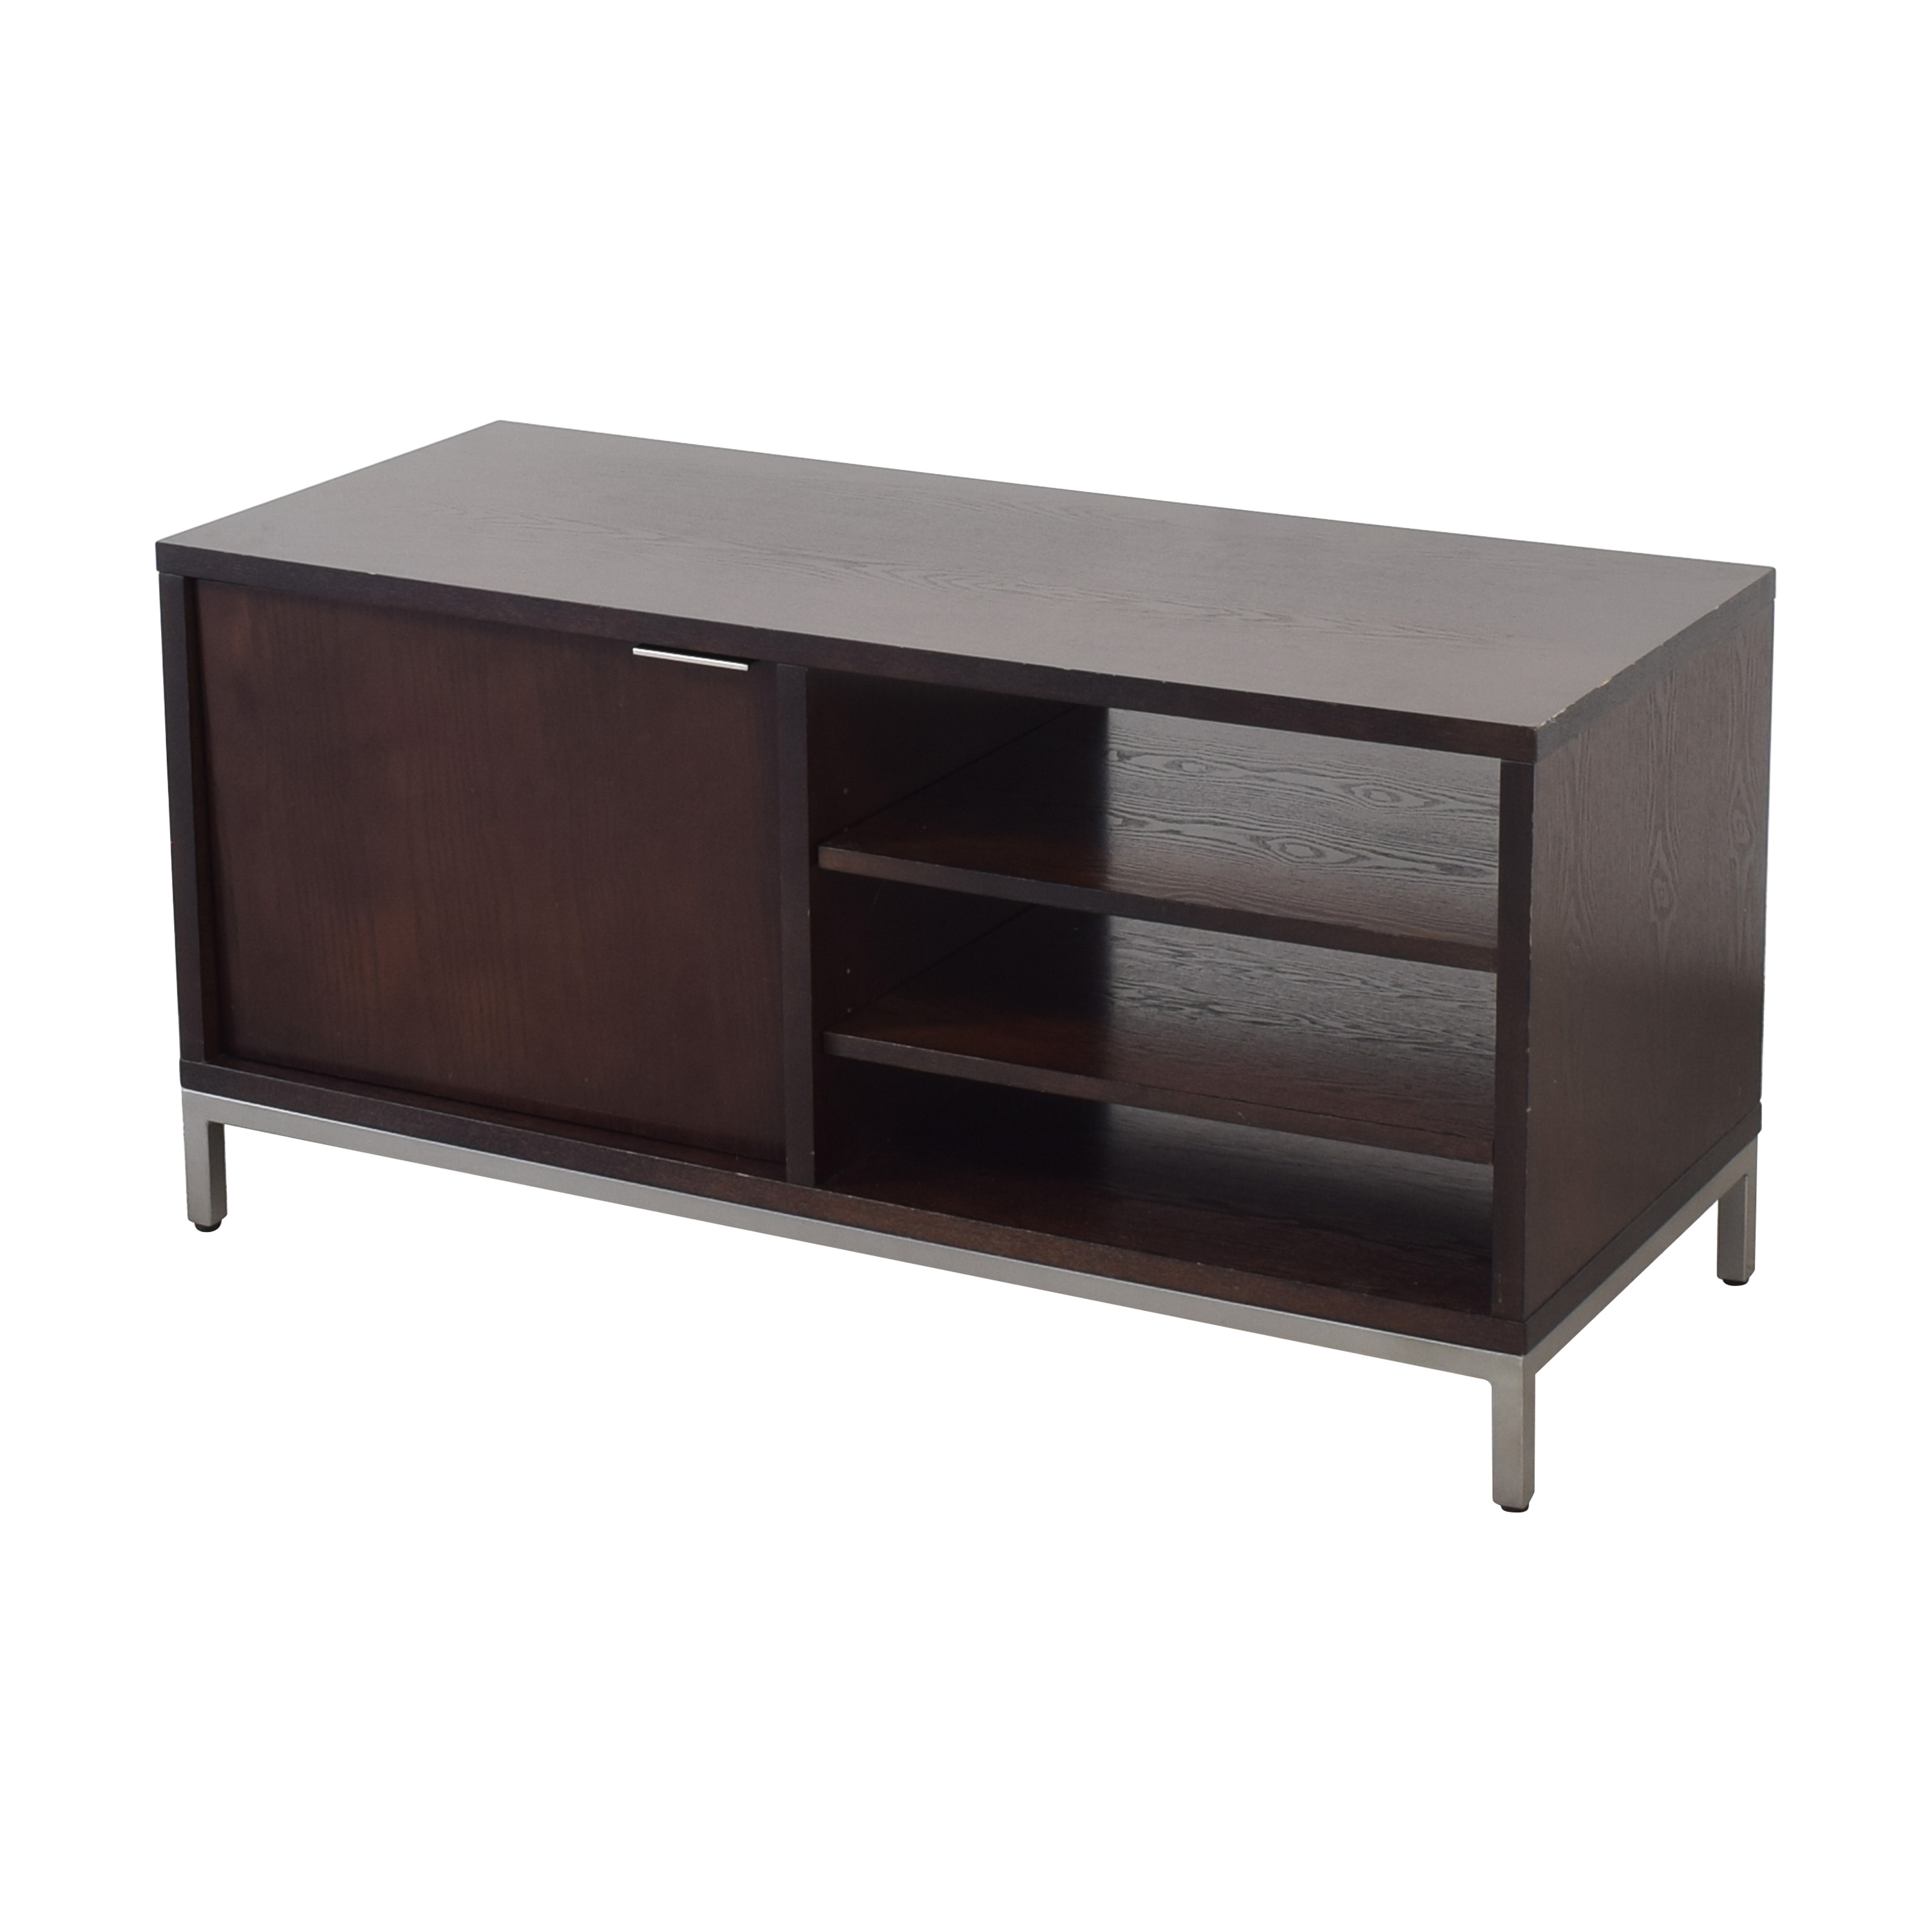 Crate & Barrel Crate & Barrel Media Stand for sale